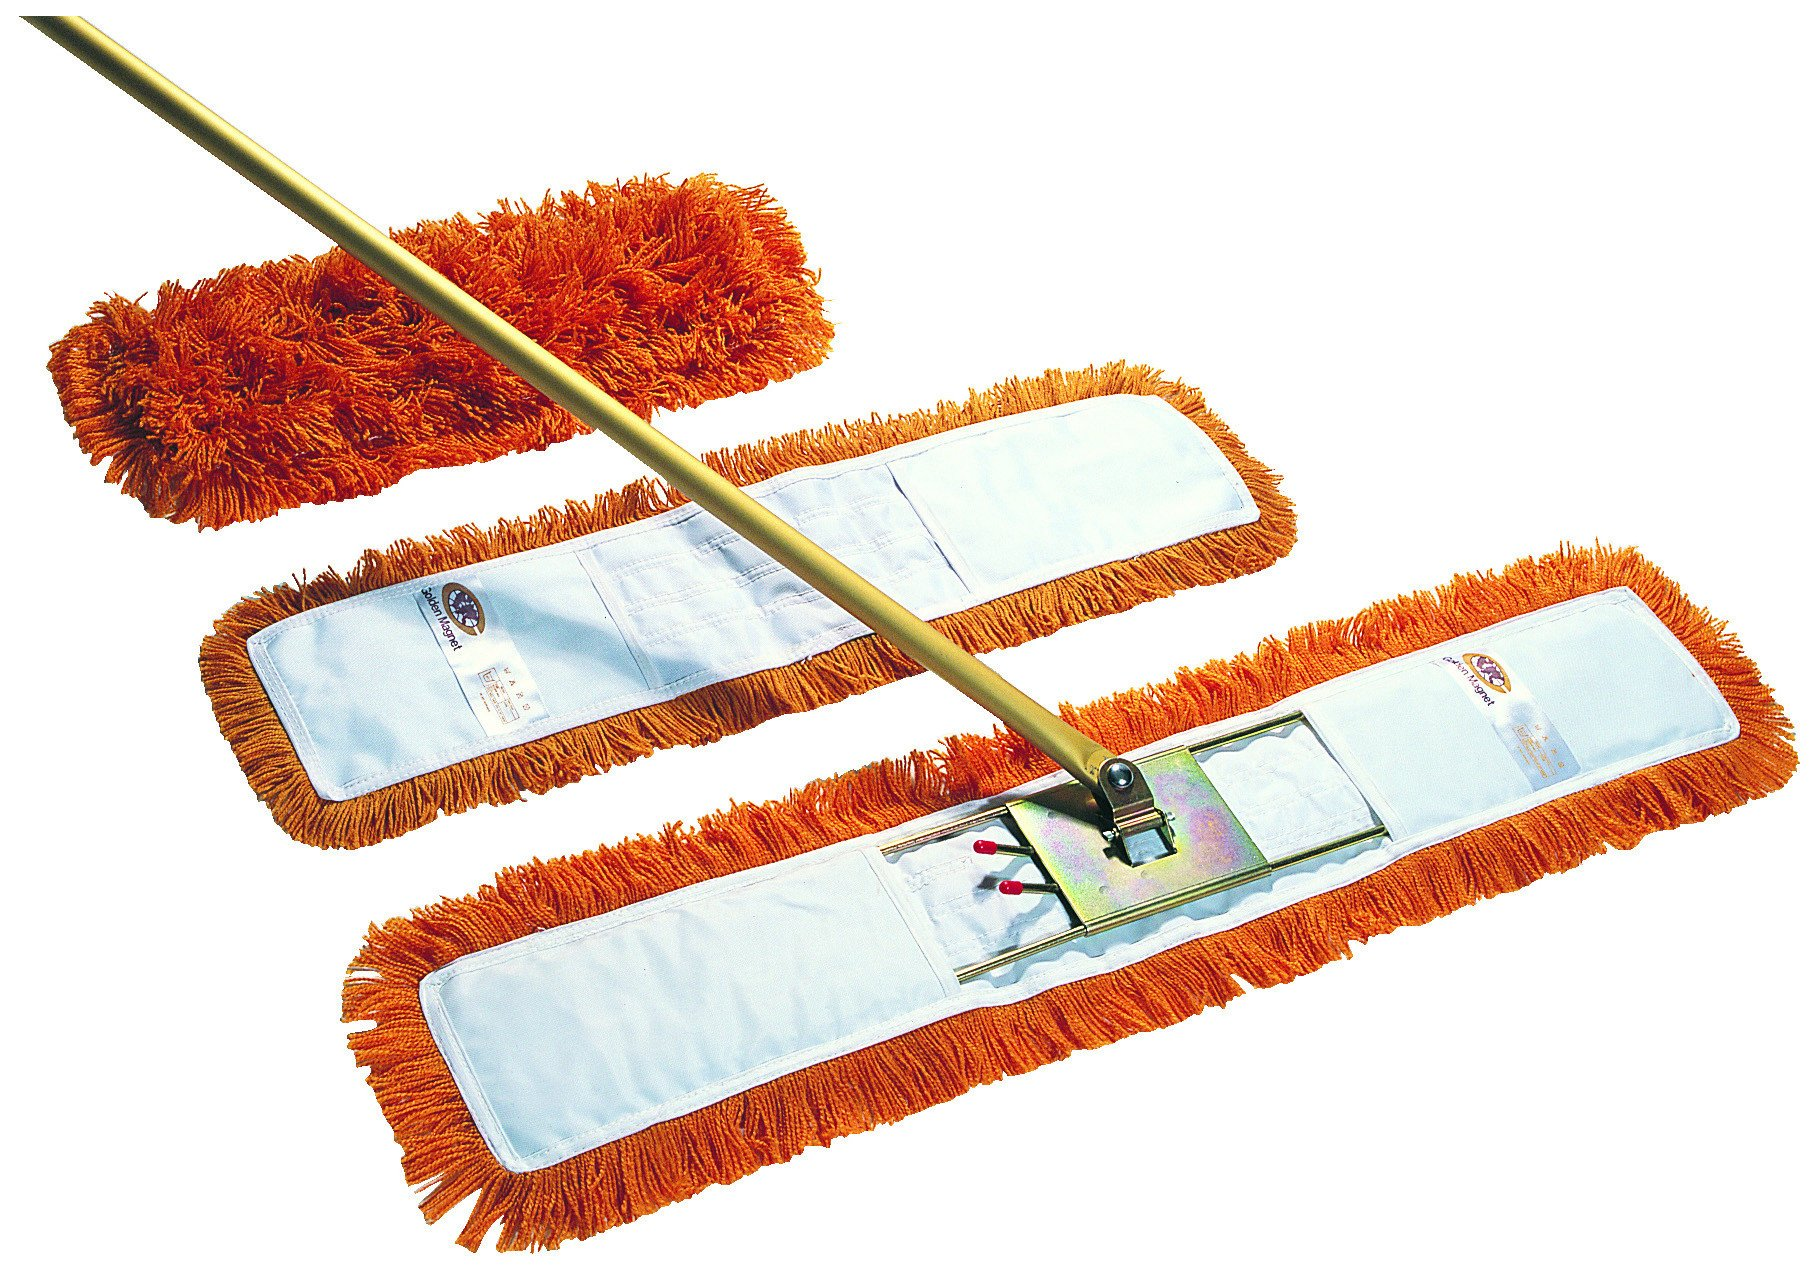 Golden Magnet Dust Control Sweeper 24 Janitorial